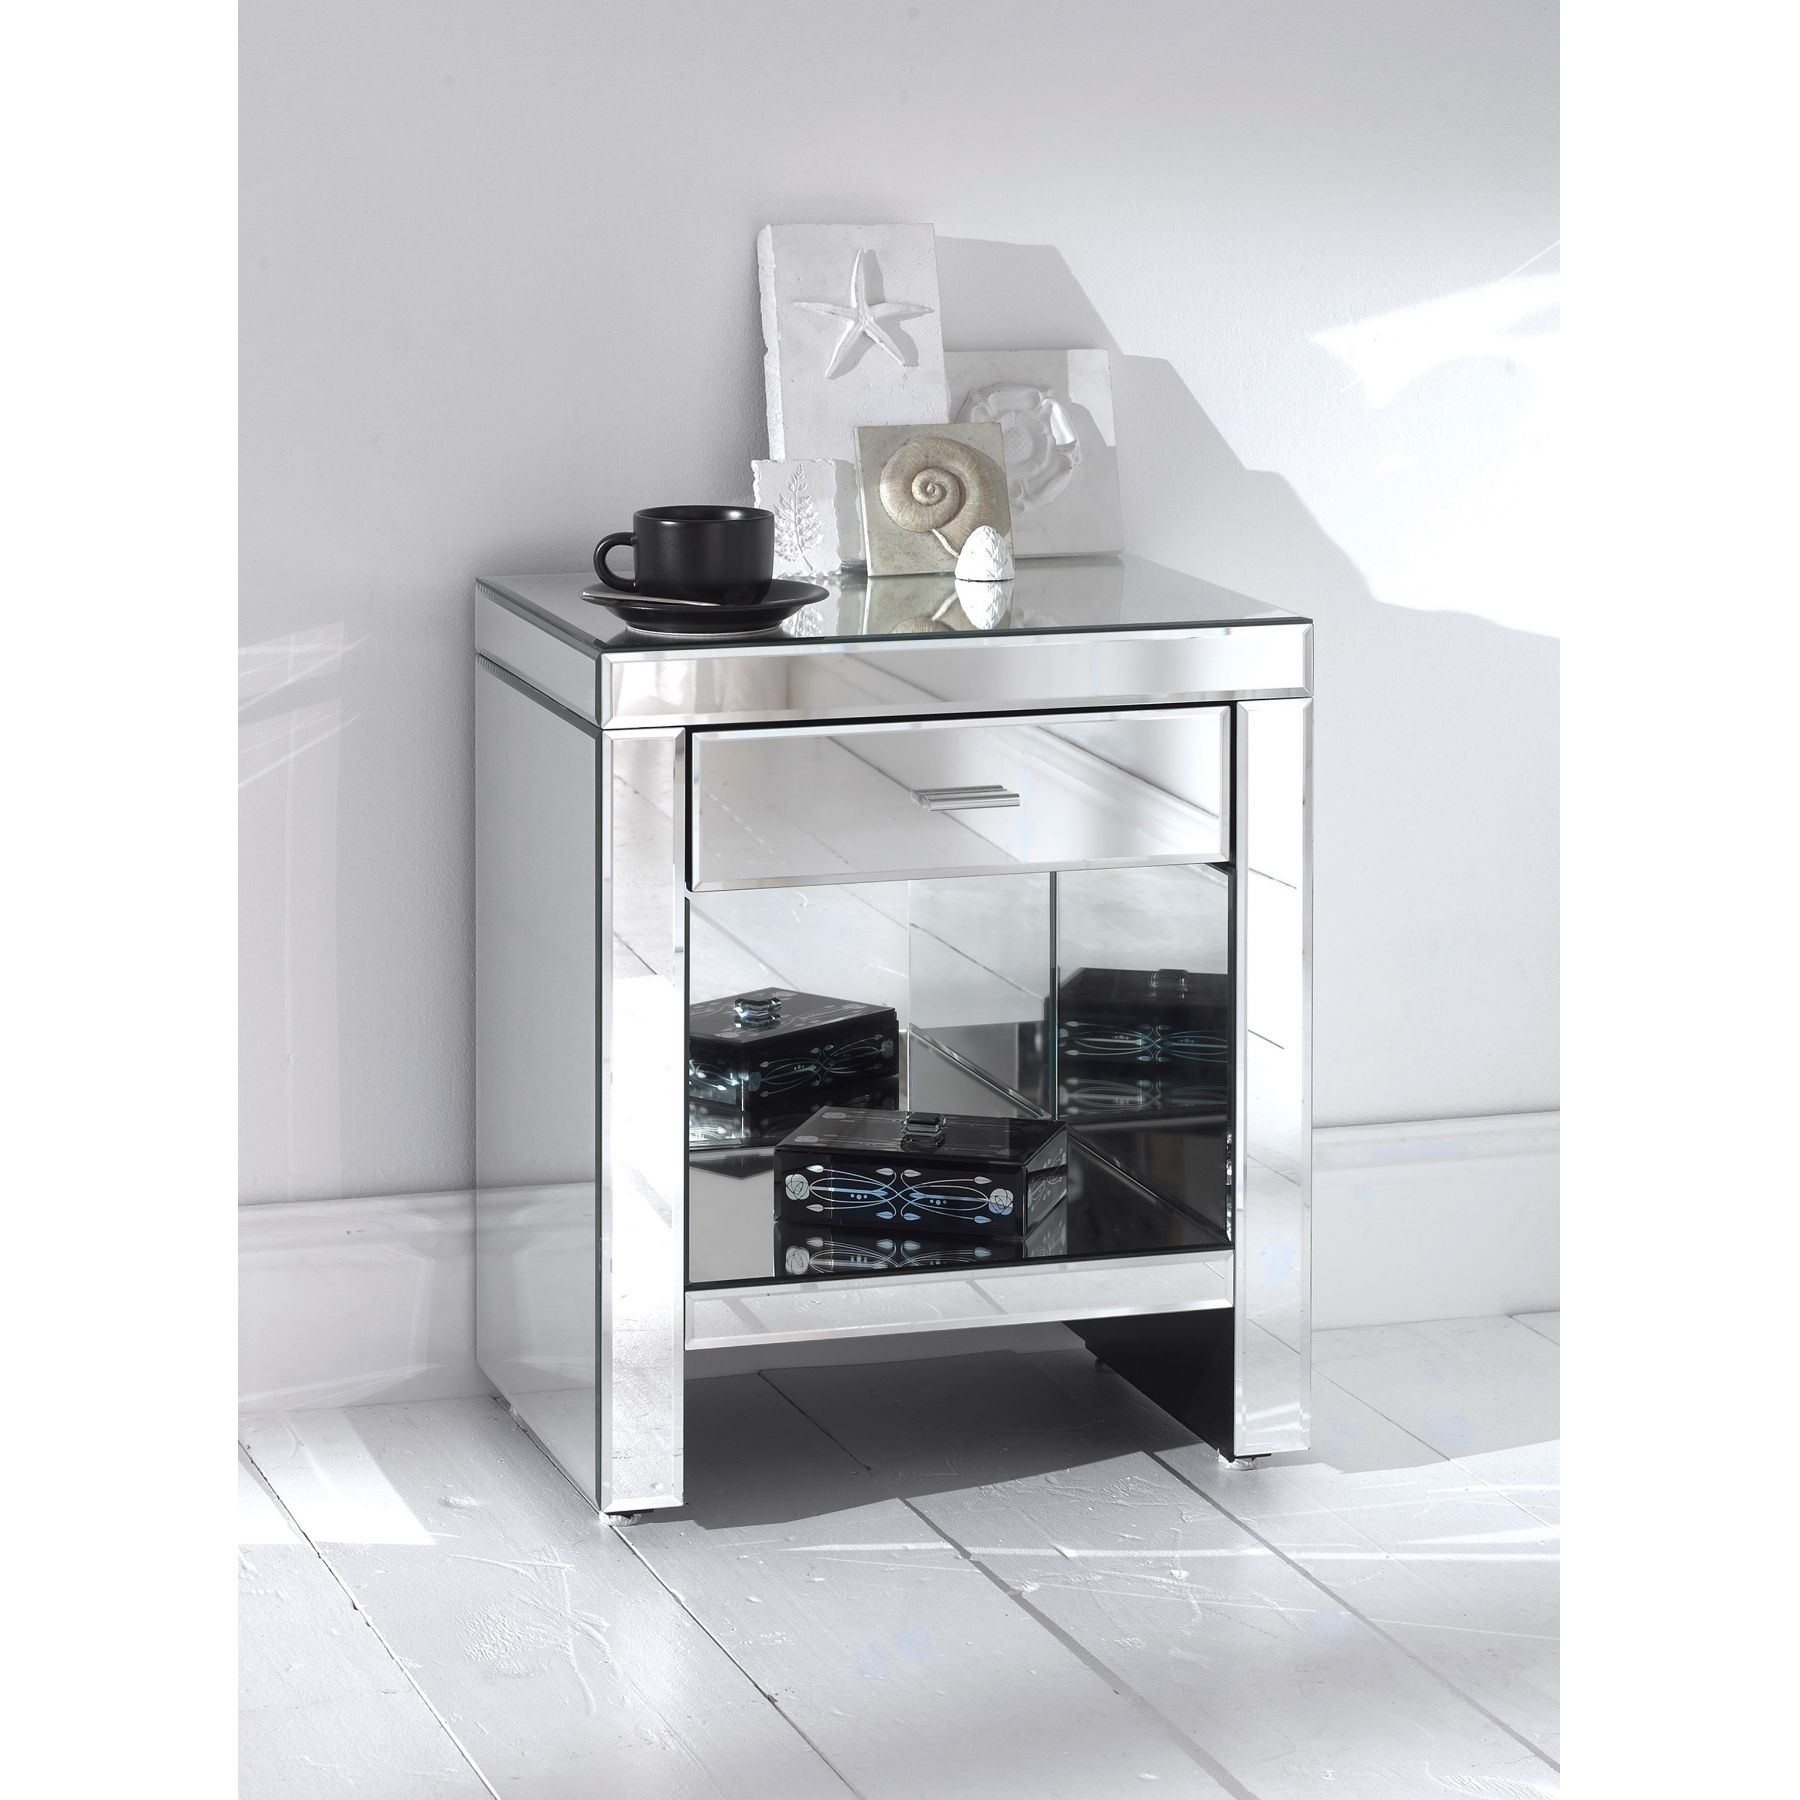 furniture awesome mirrored nightstand for home with storage base and single drawer bedroom ideas mirror bedside table diy dresser maple nightsta white accent side designs